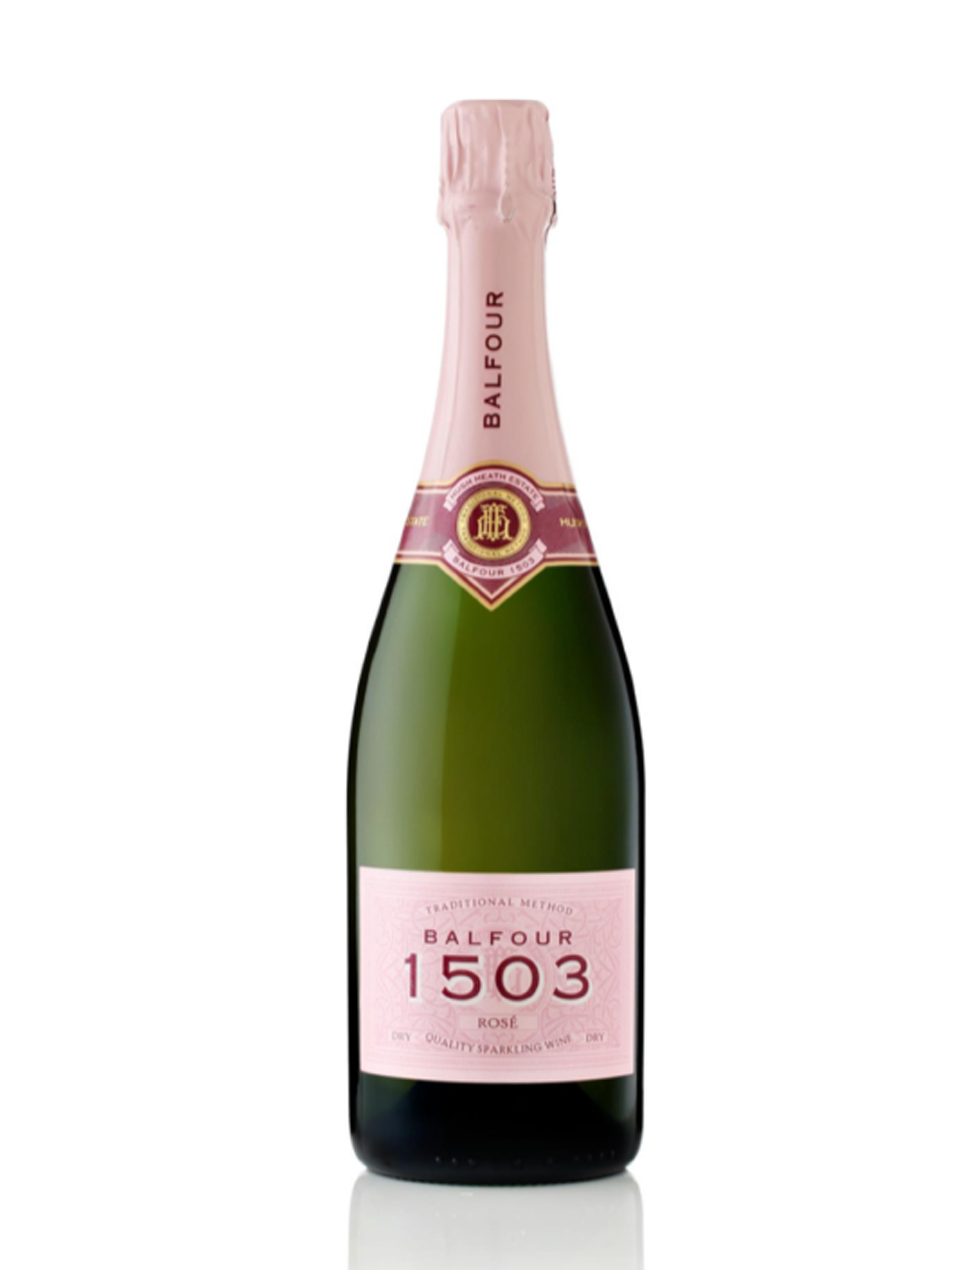 Hush Heath Balfour 1503 Rosé